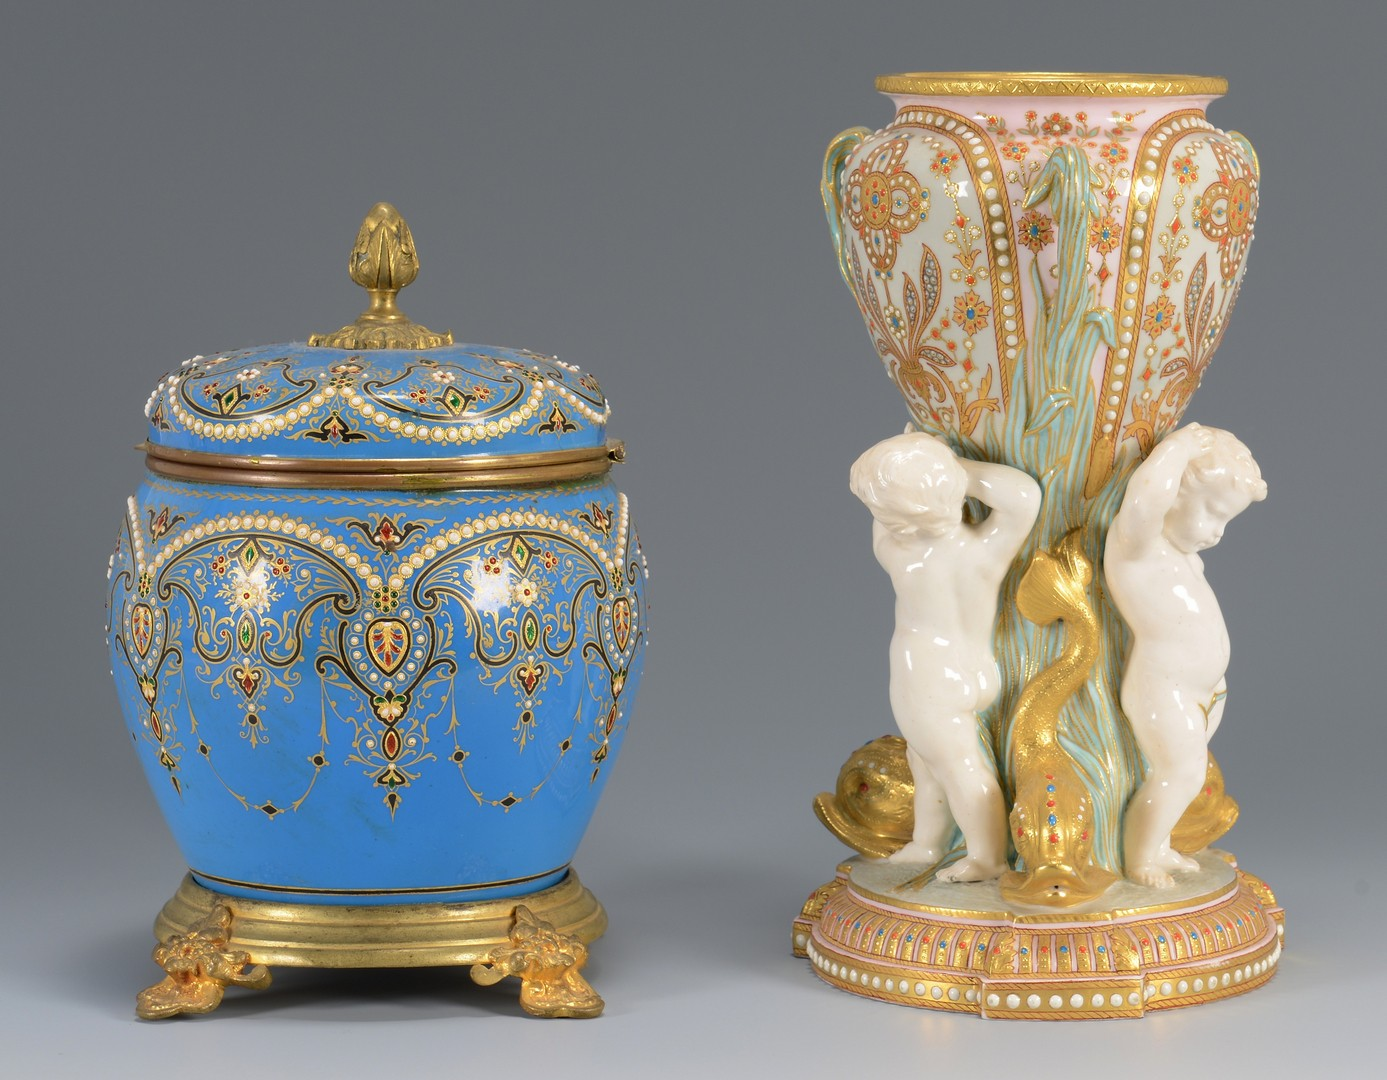 Lot 613: European jeweled porcelain and glass vase and jar